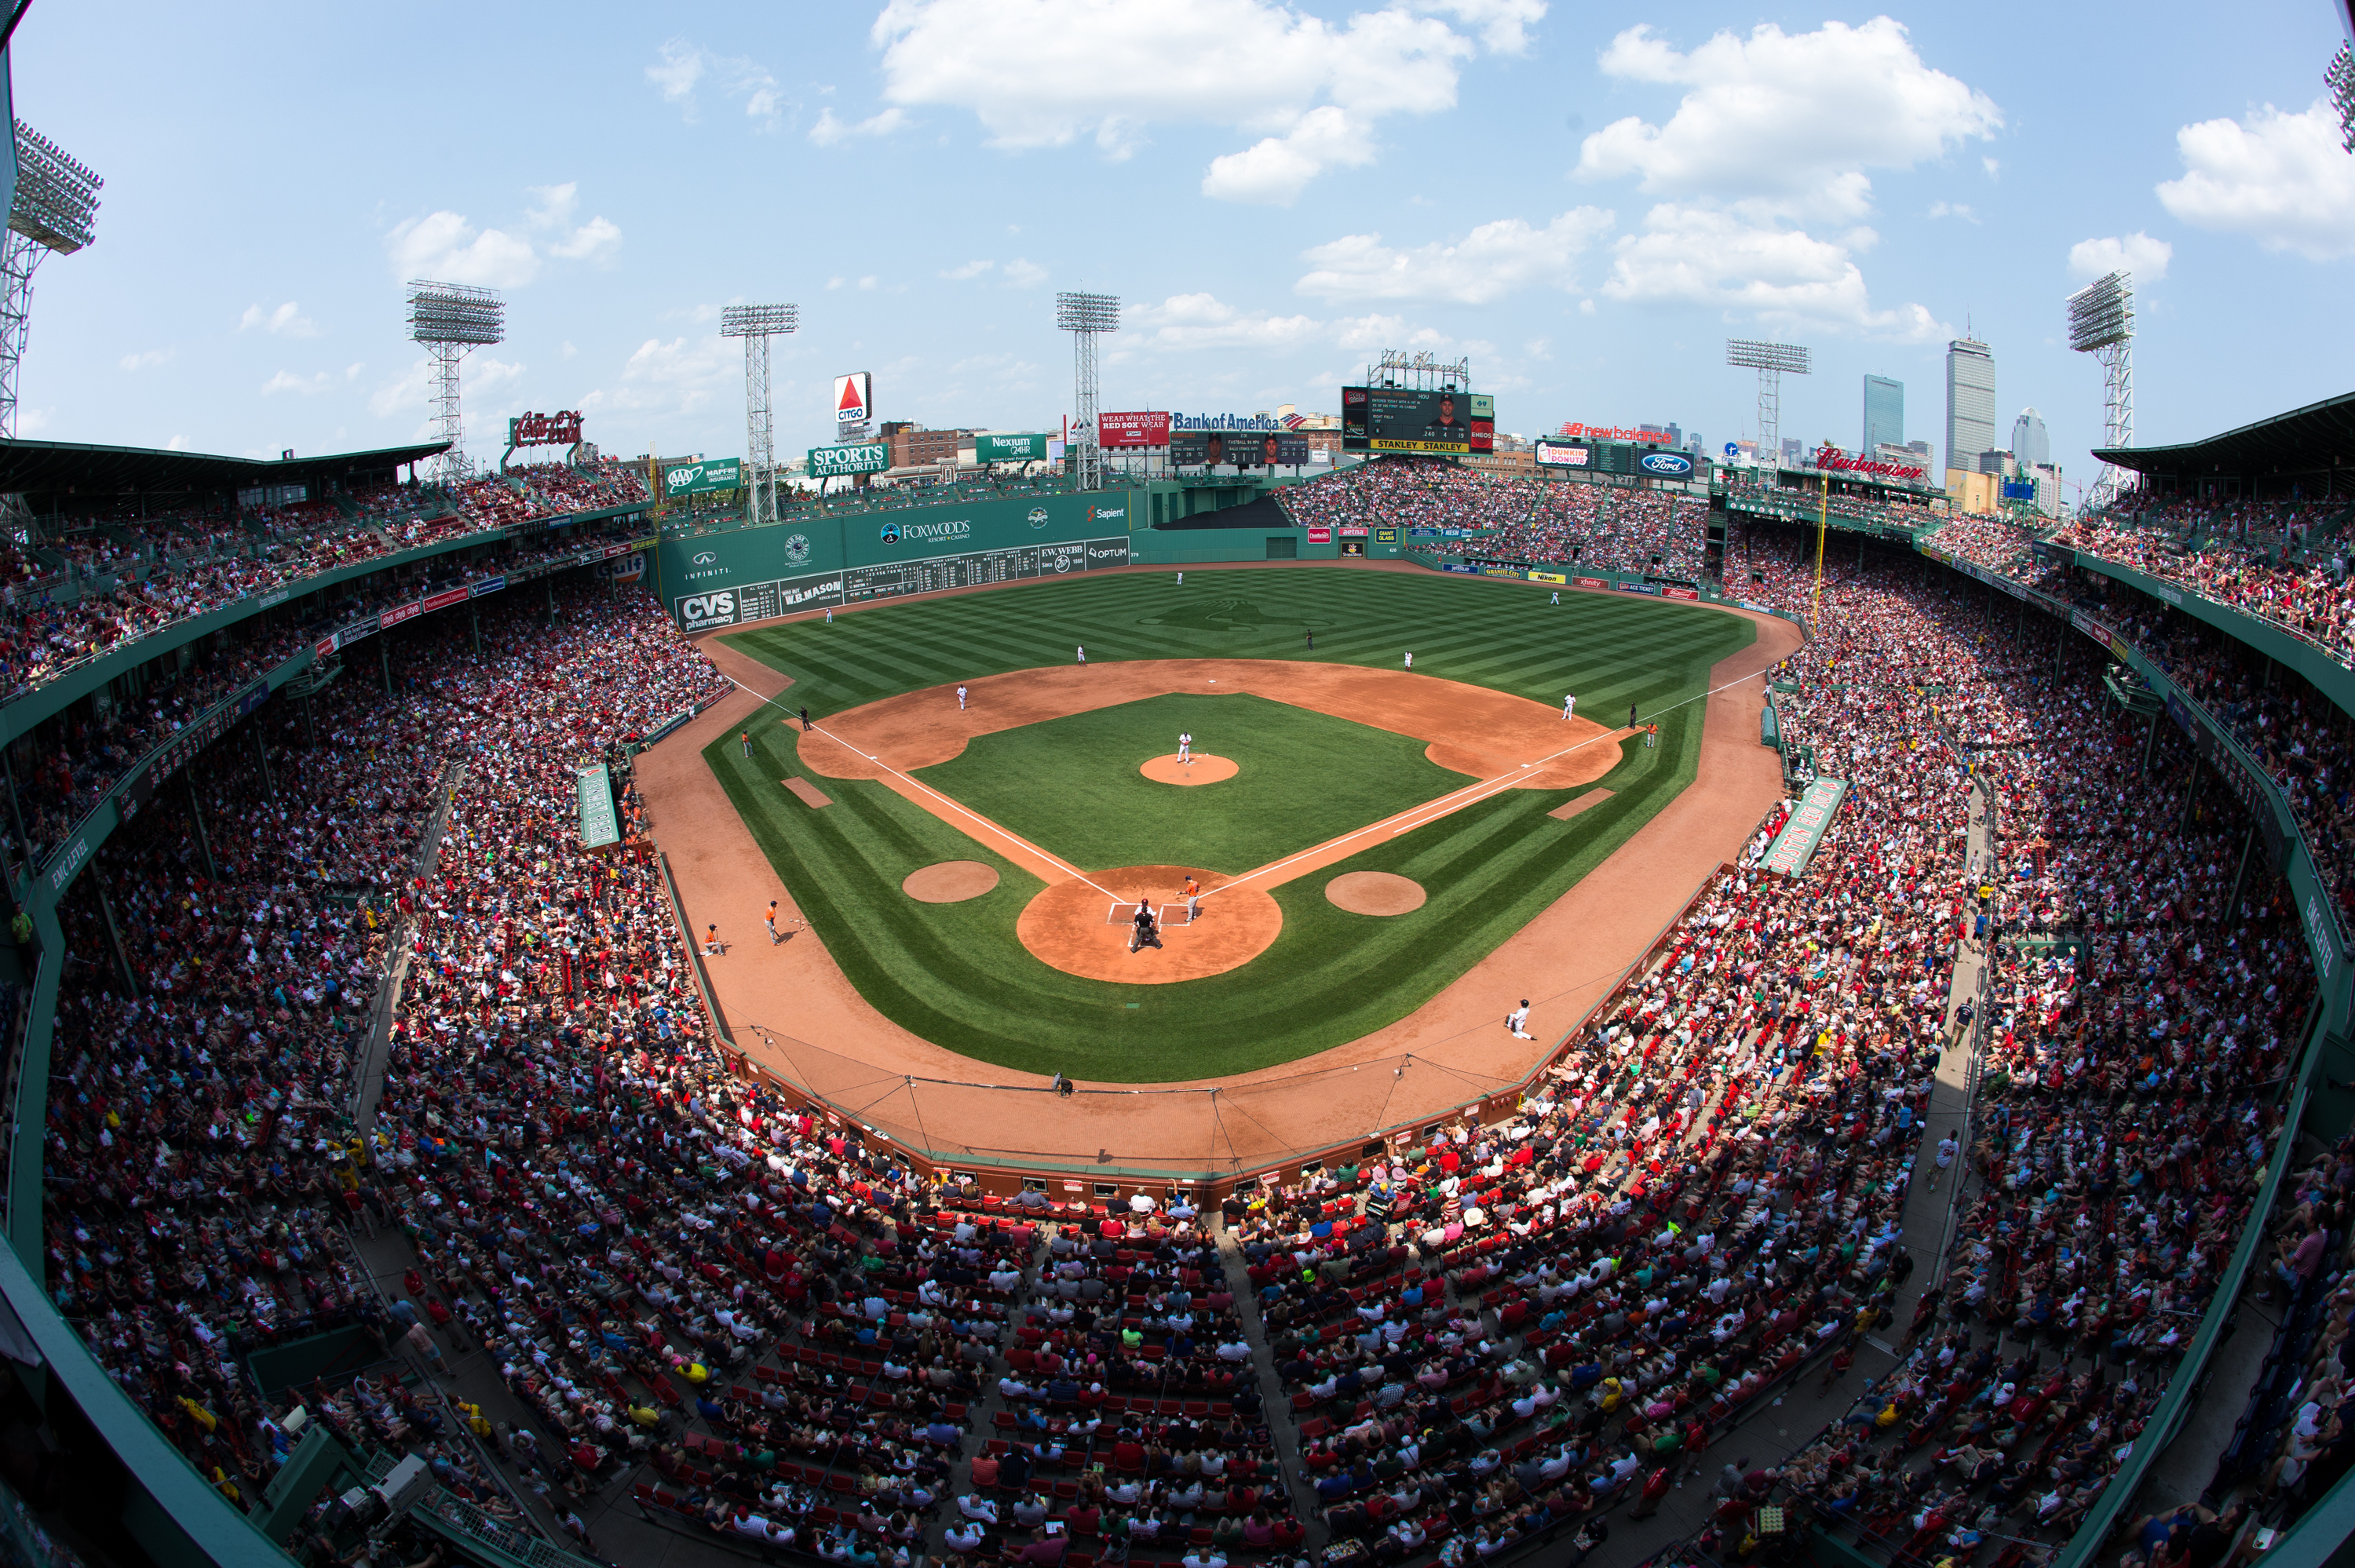 The Boston Red Sox play a game against the Houston Astros at Fenway Park on July 5, 2015 in Boston, Massachusetts.